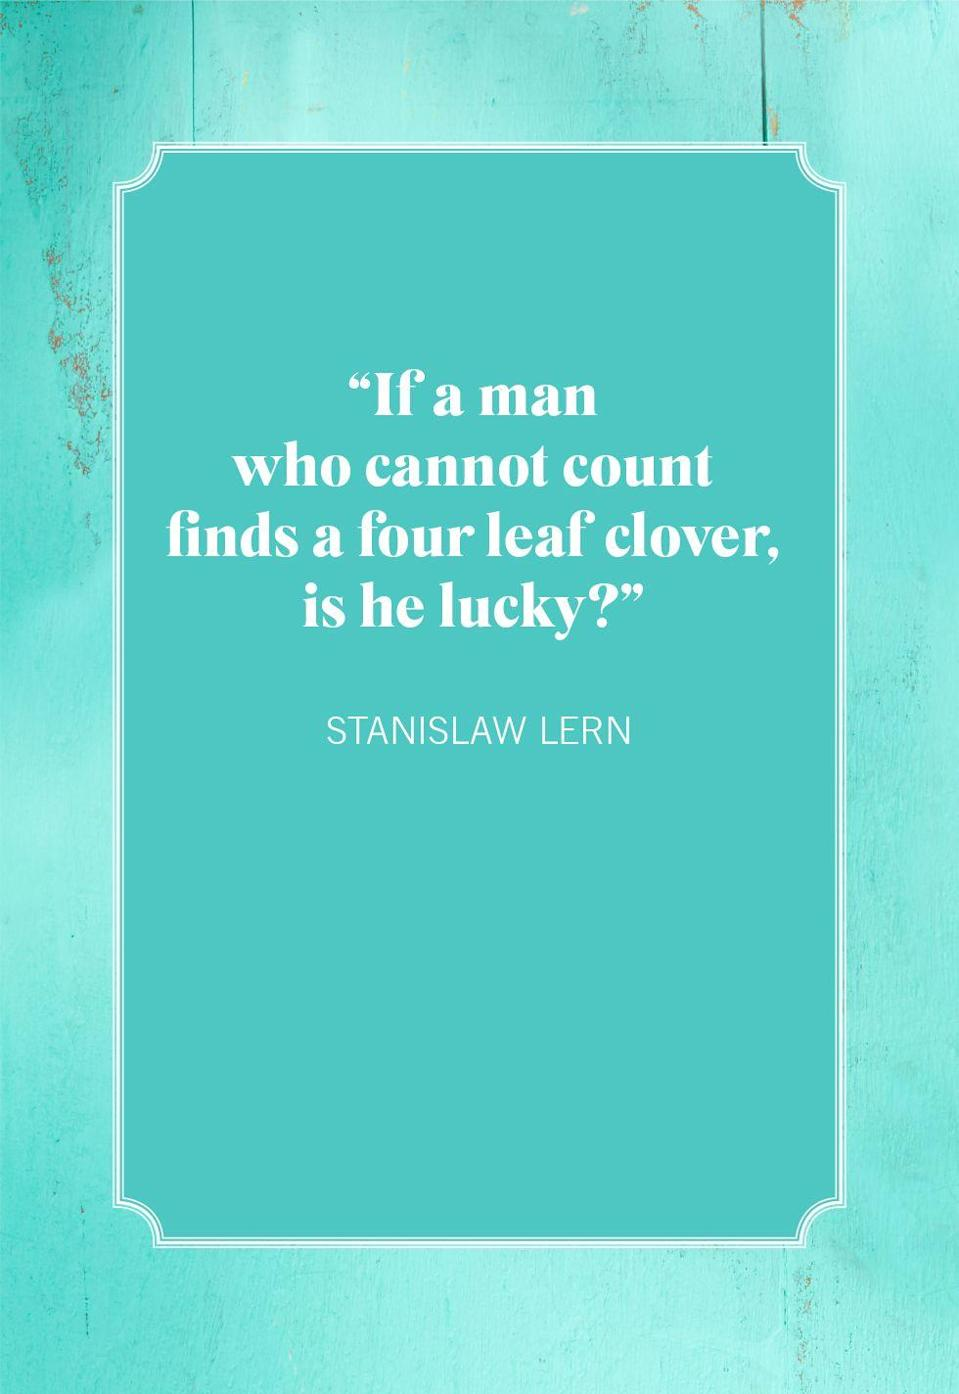 "<p>""If a man who cannot count finds a four leaf clover, is he lucky?""</p>"